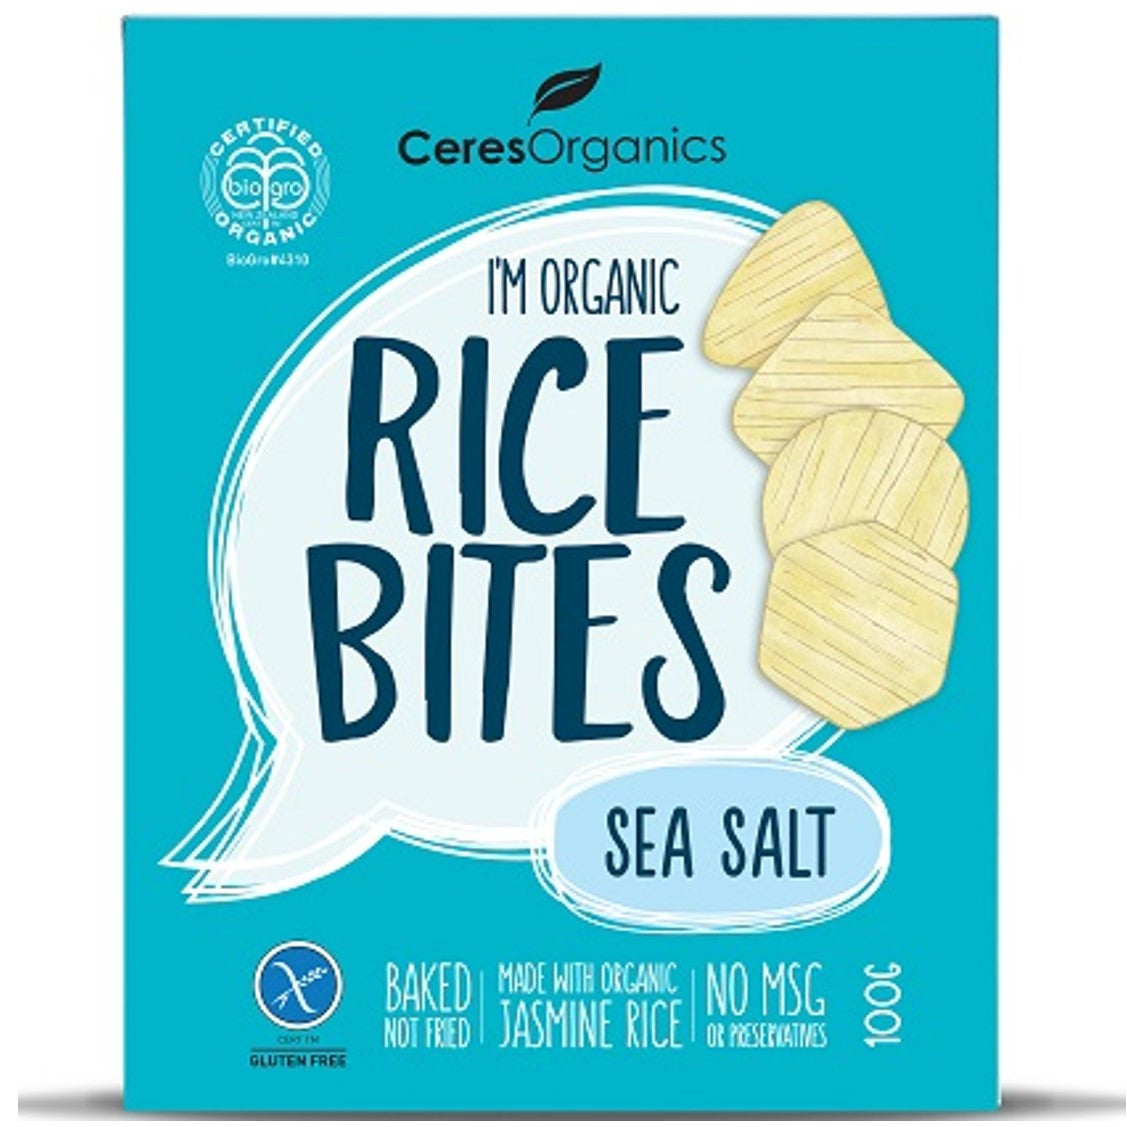 Ceres Organics Rice Bites - Sea Salt, 100 g.-NaturesWisdom